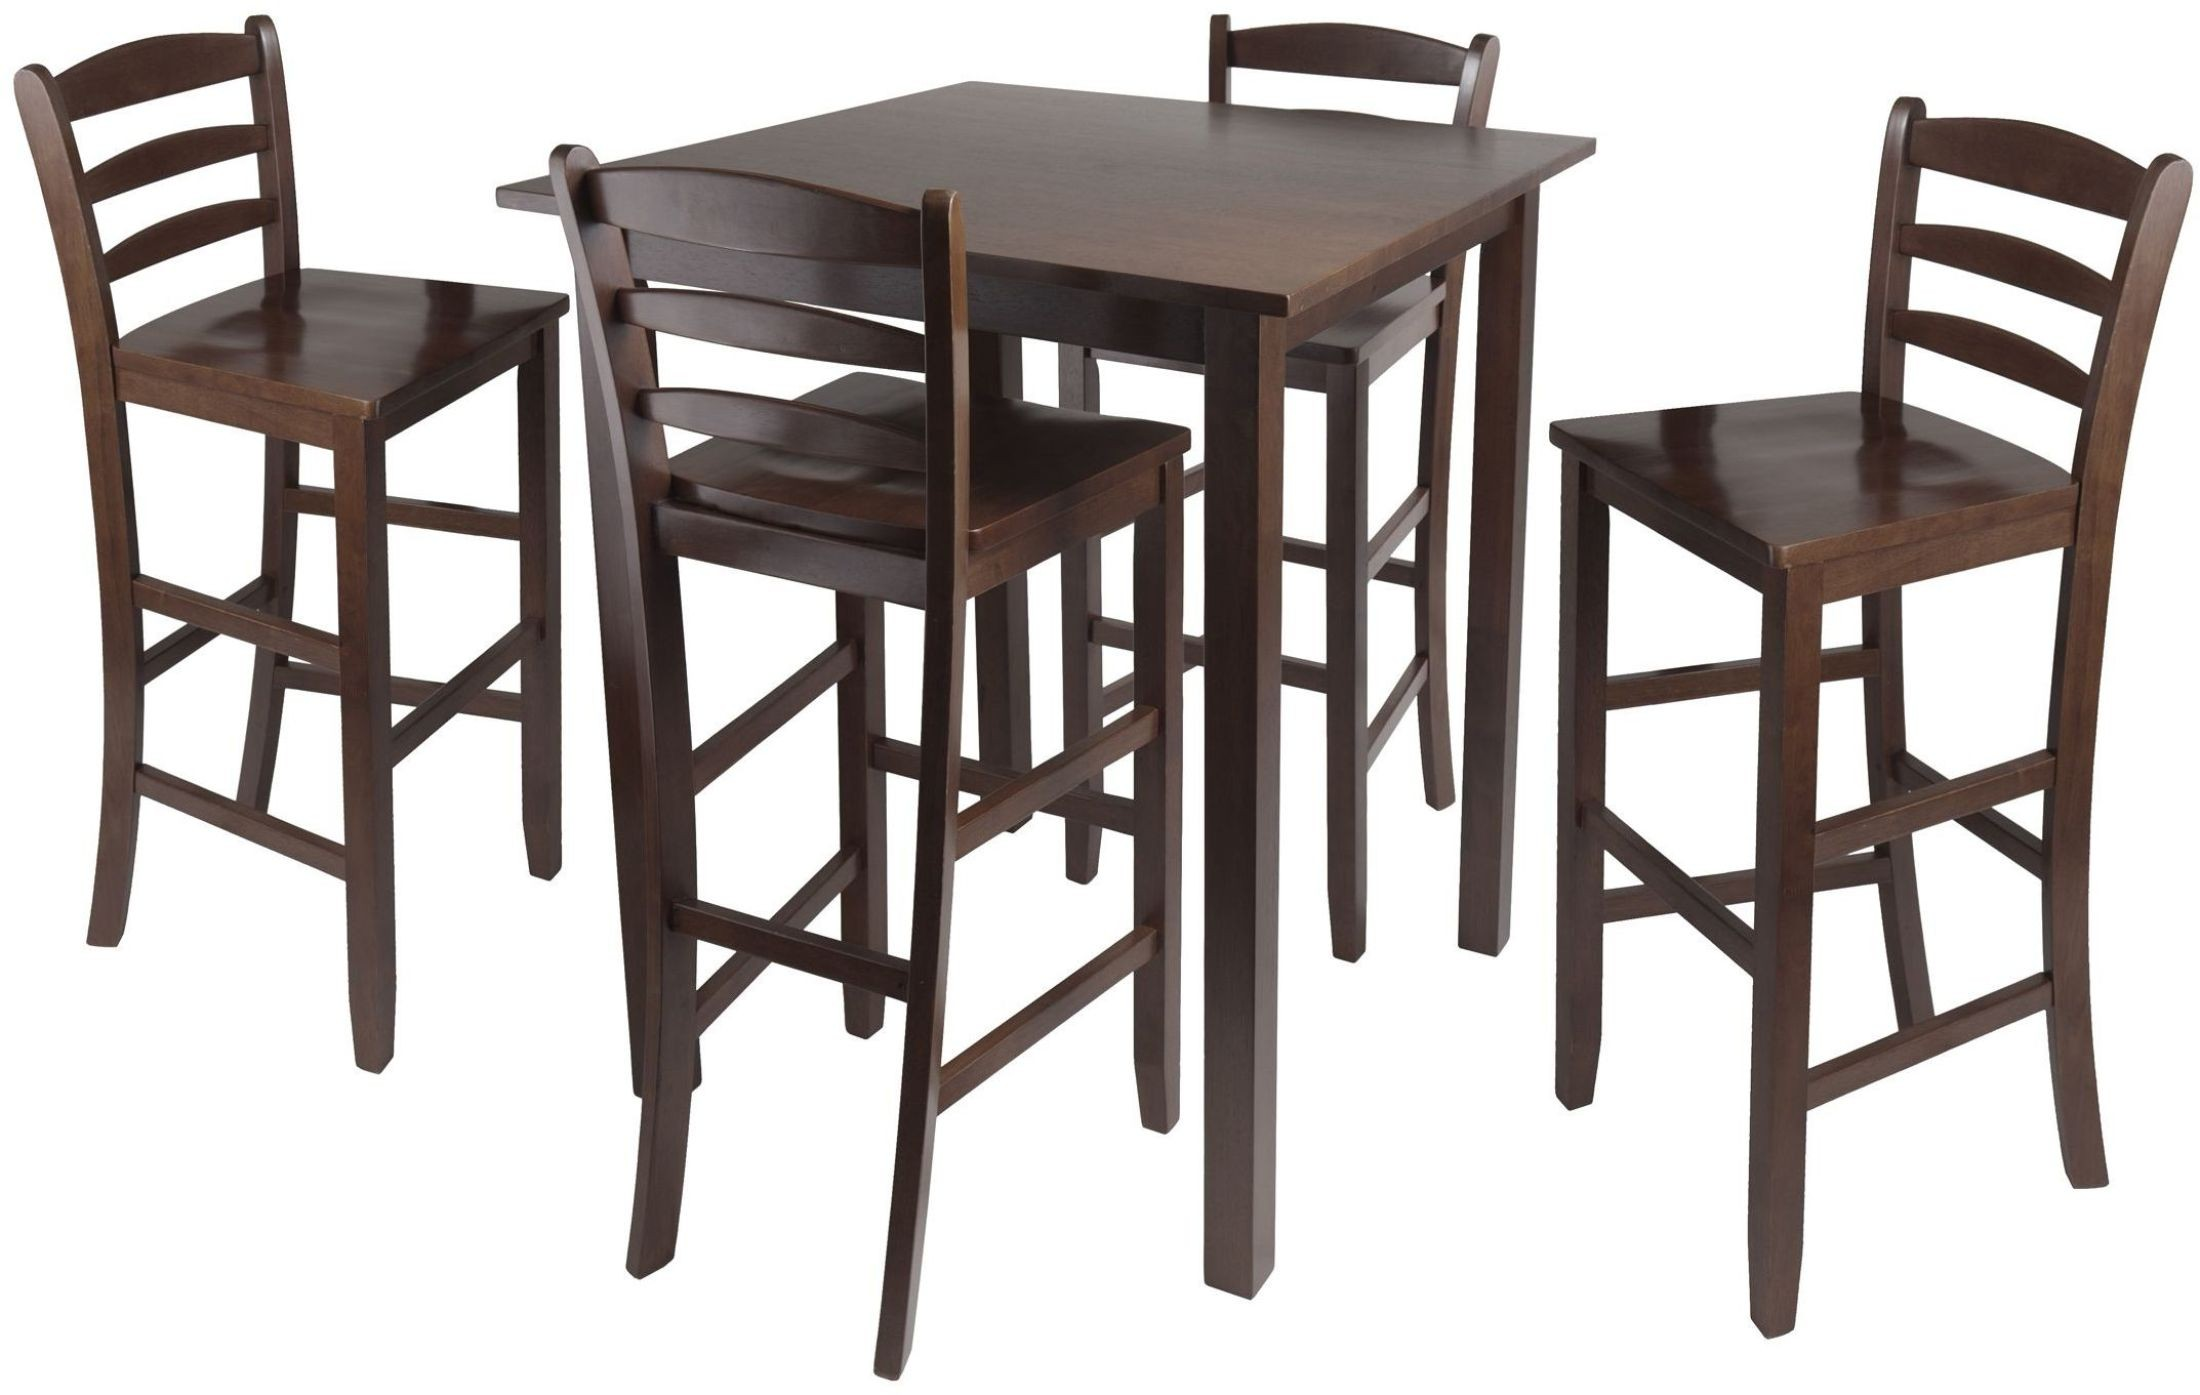 counter height chairs with back queen ann chair parkland walnut 5 piece dining set